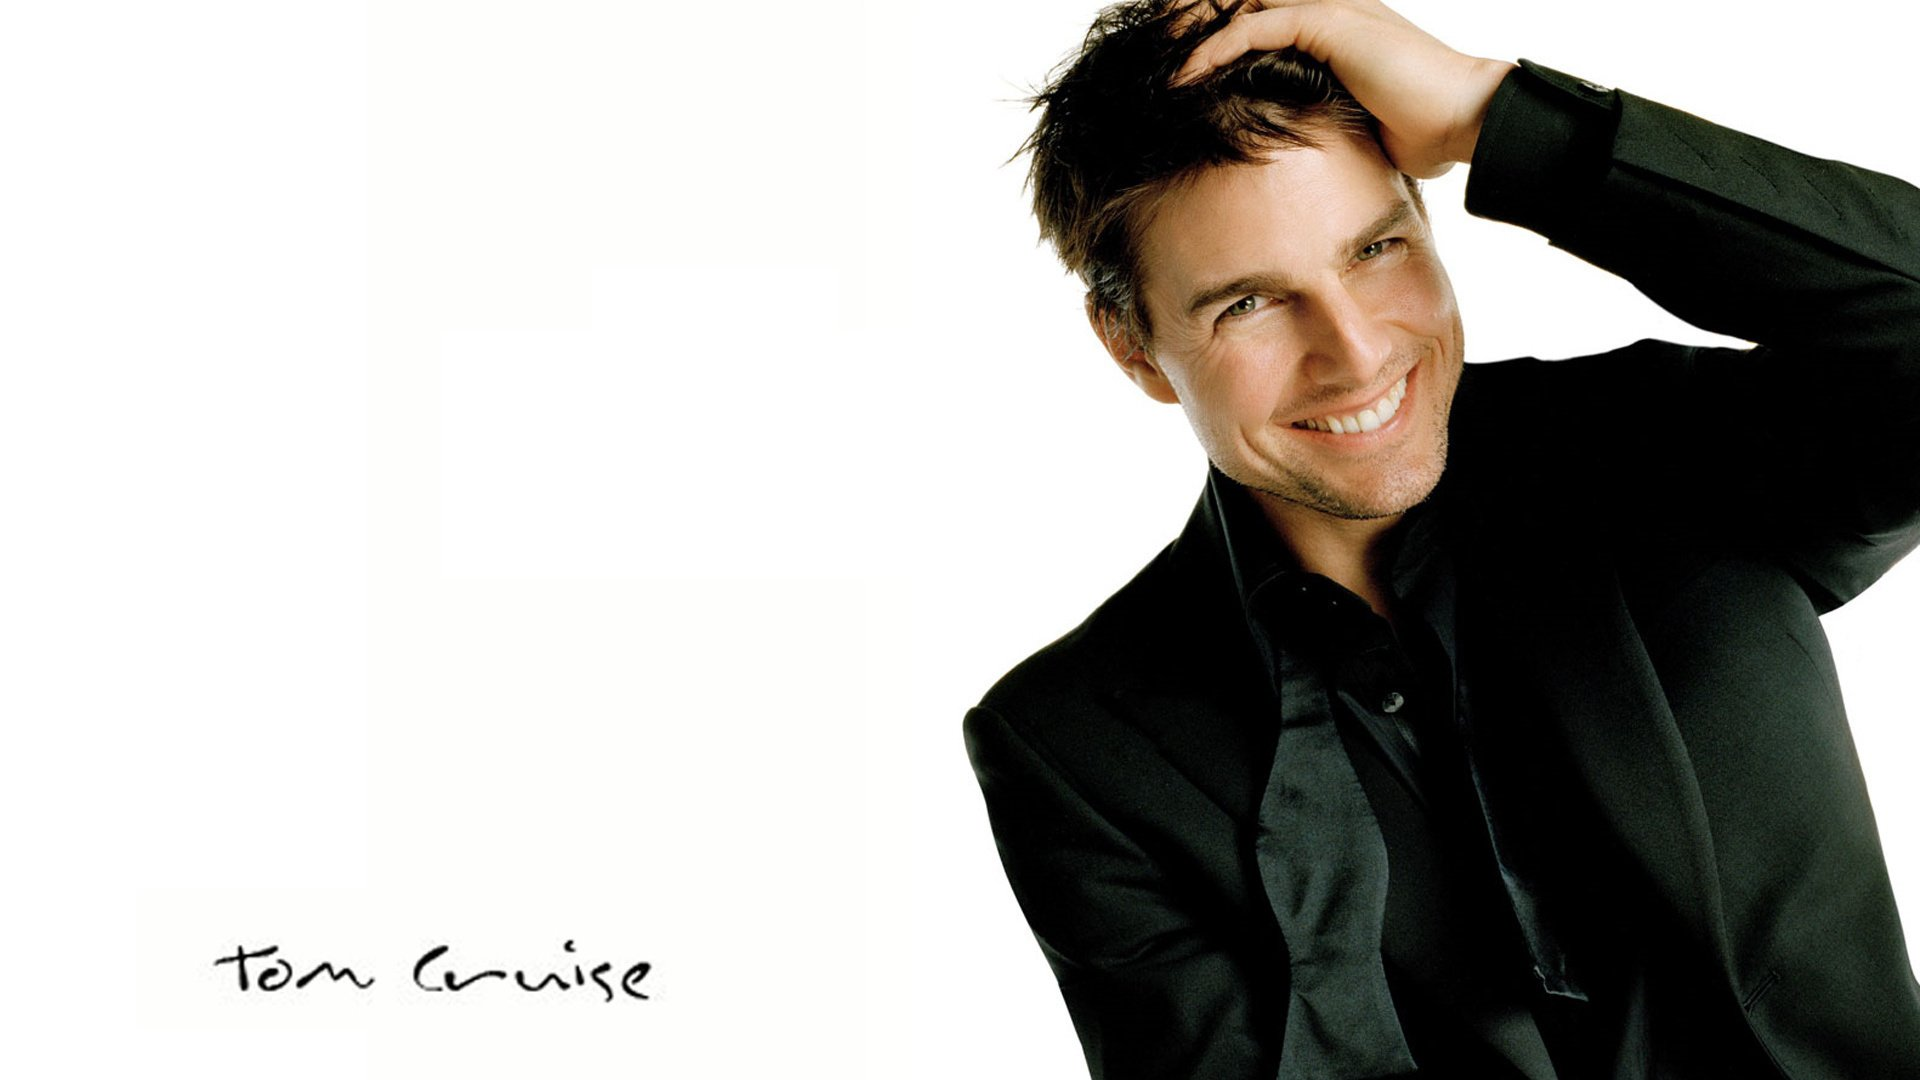 174 Tom Cruise HD Wallpapers Background Images 1920x1080